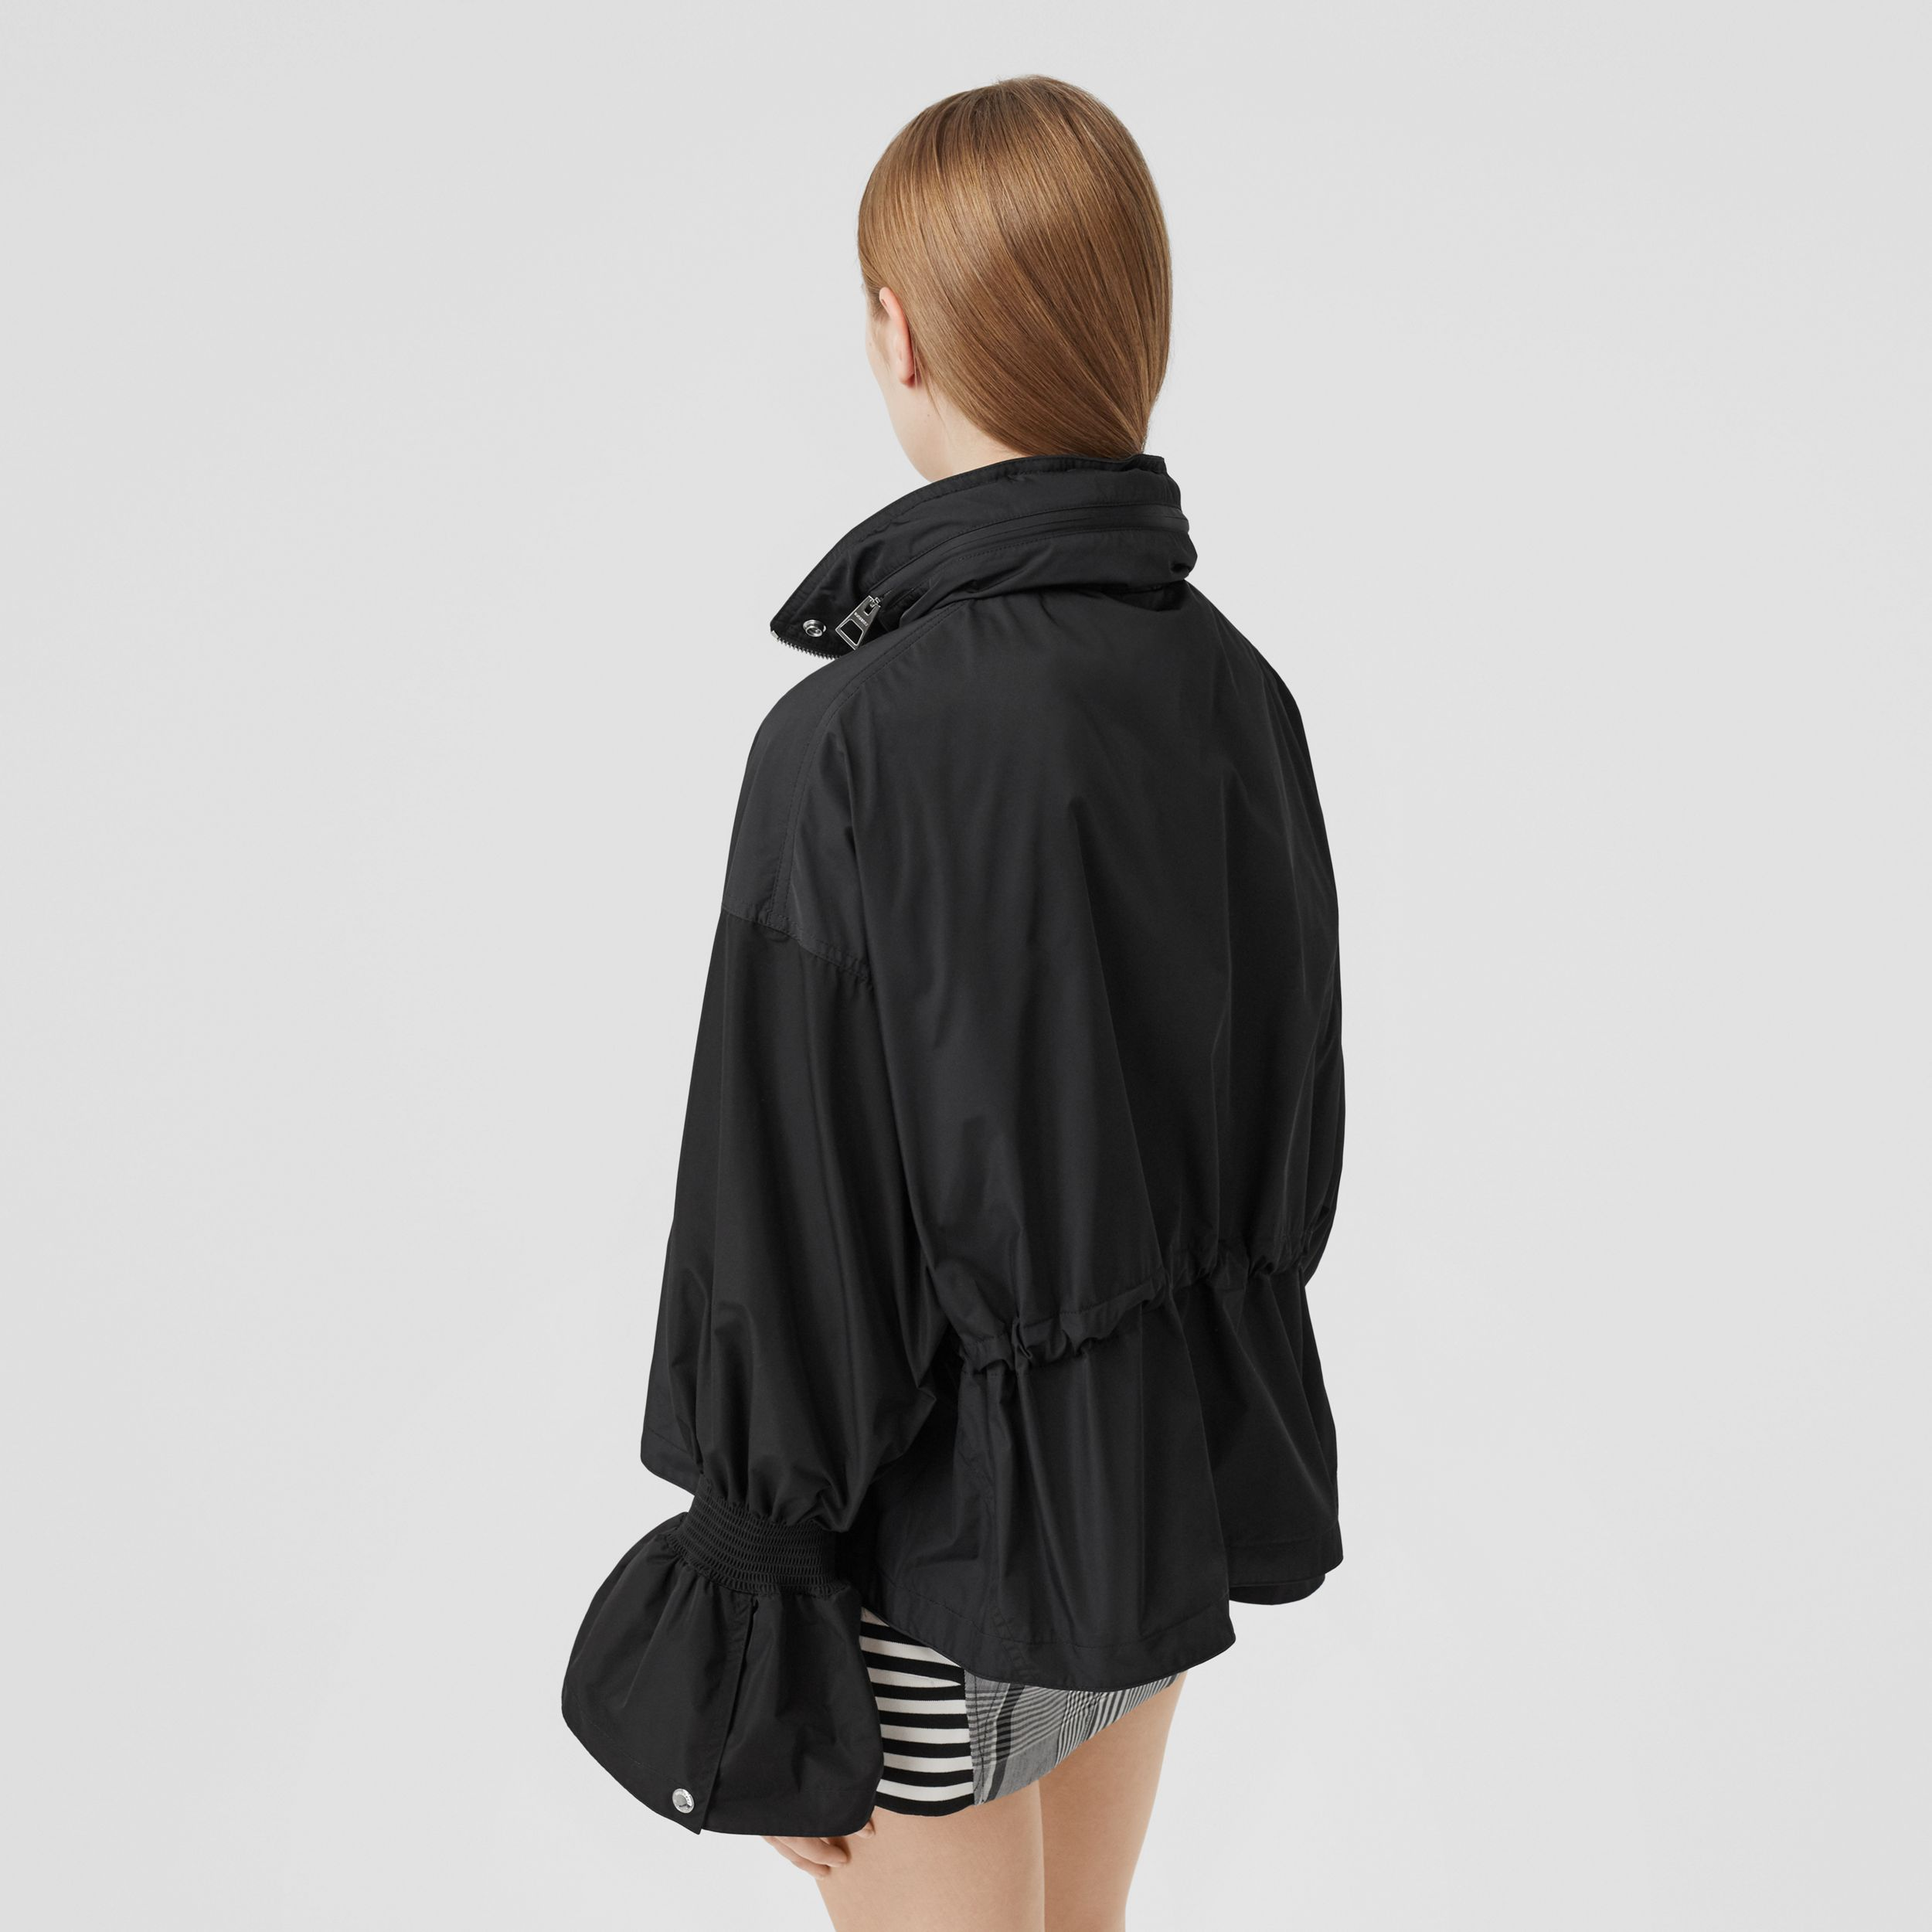 Packaway Hood Bio-based Nylon Jacket in Black - Women | Burberry United Kingdom - 3